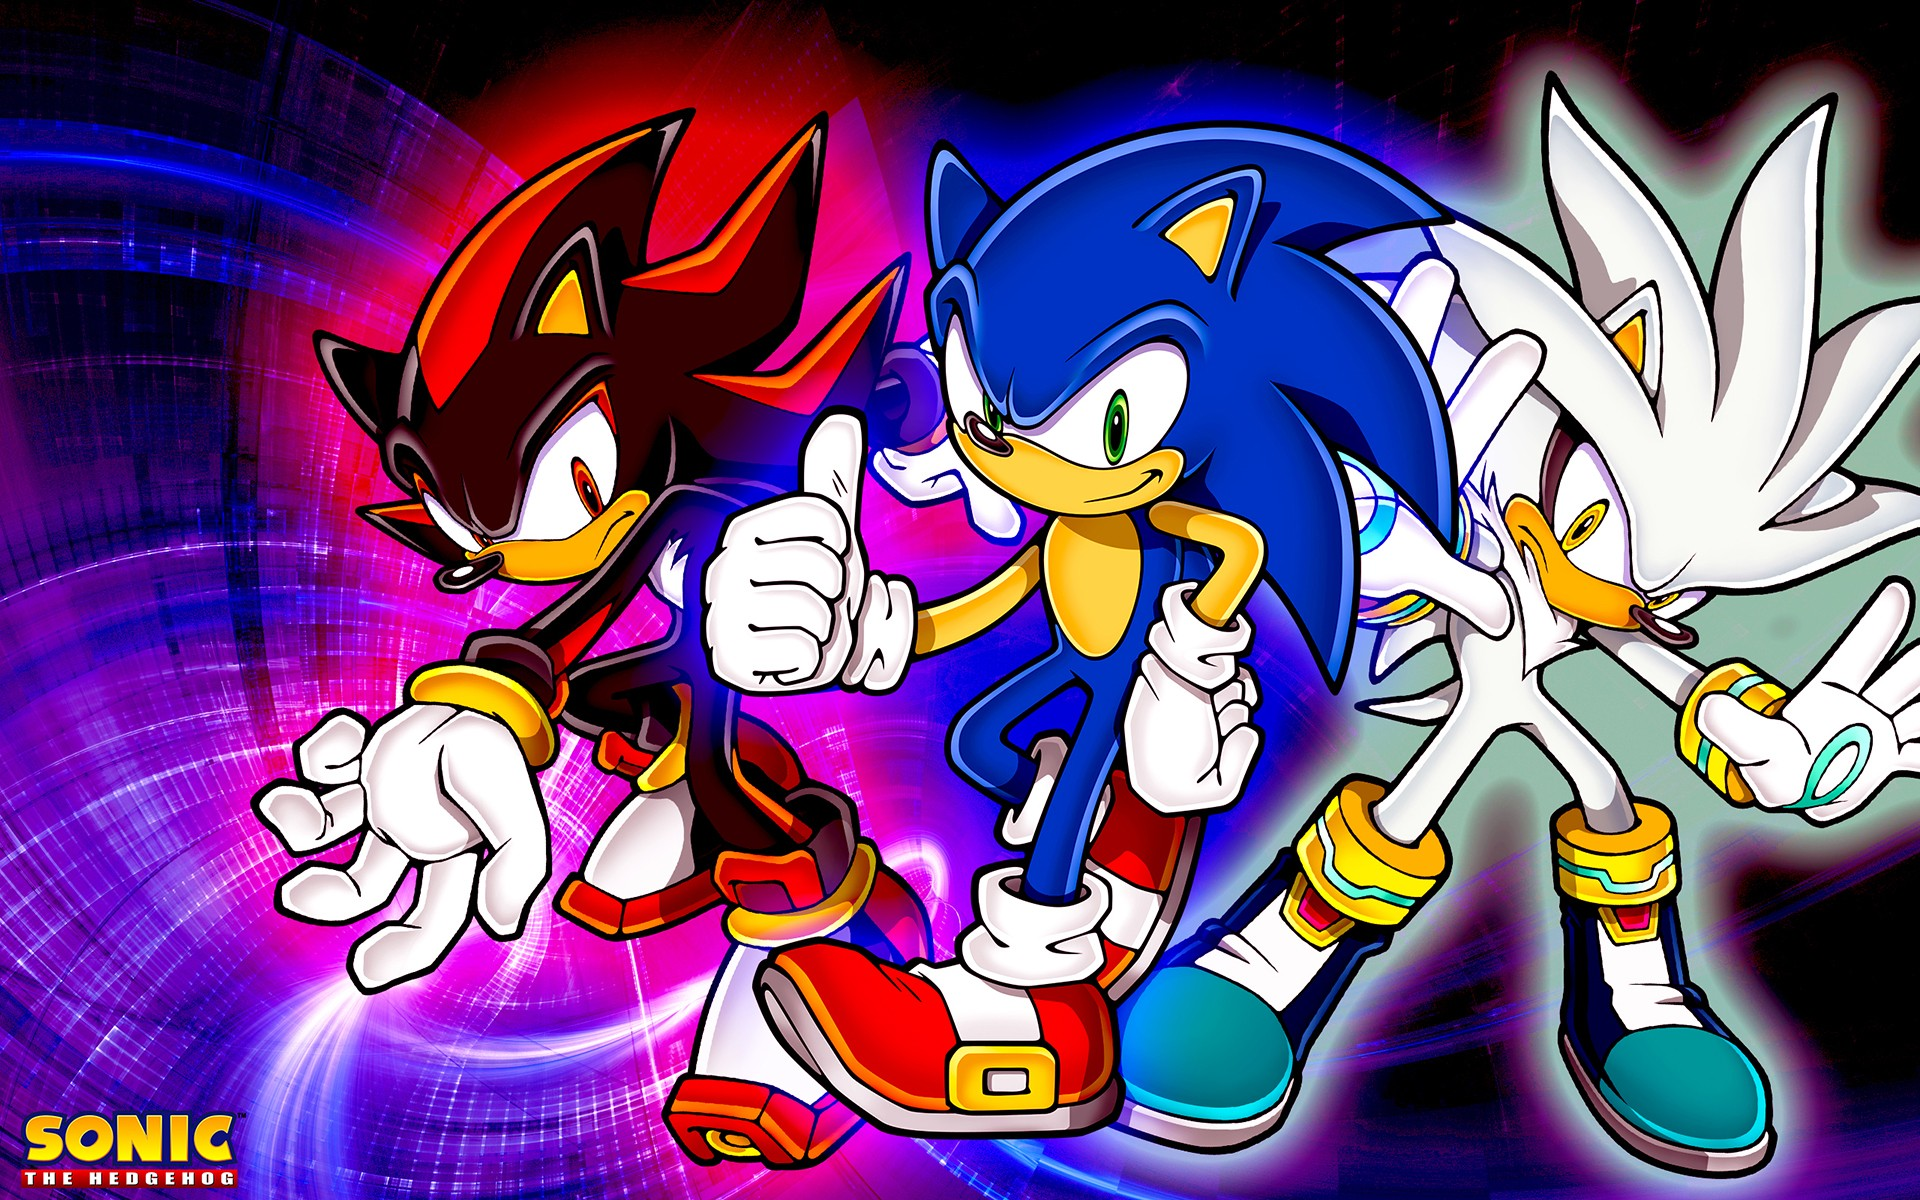 Sonic The Hedgehog (2006) Full HD Wallpaper And Background